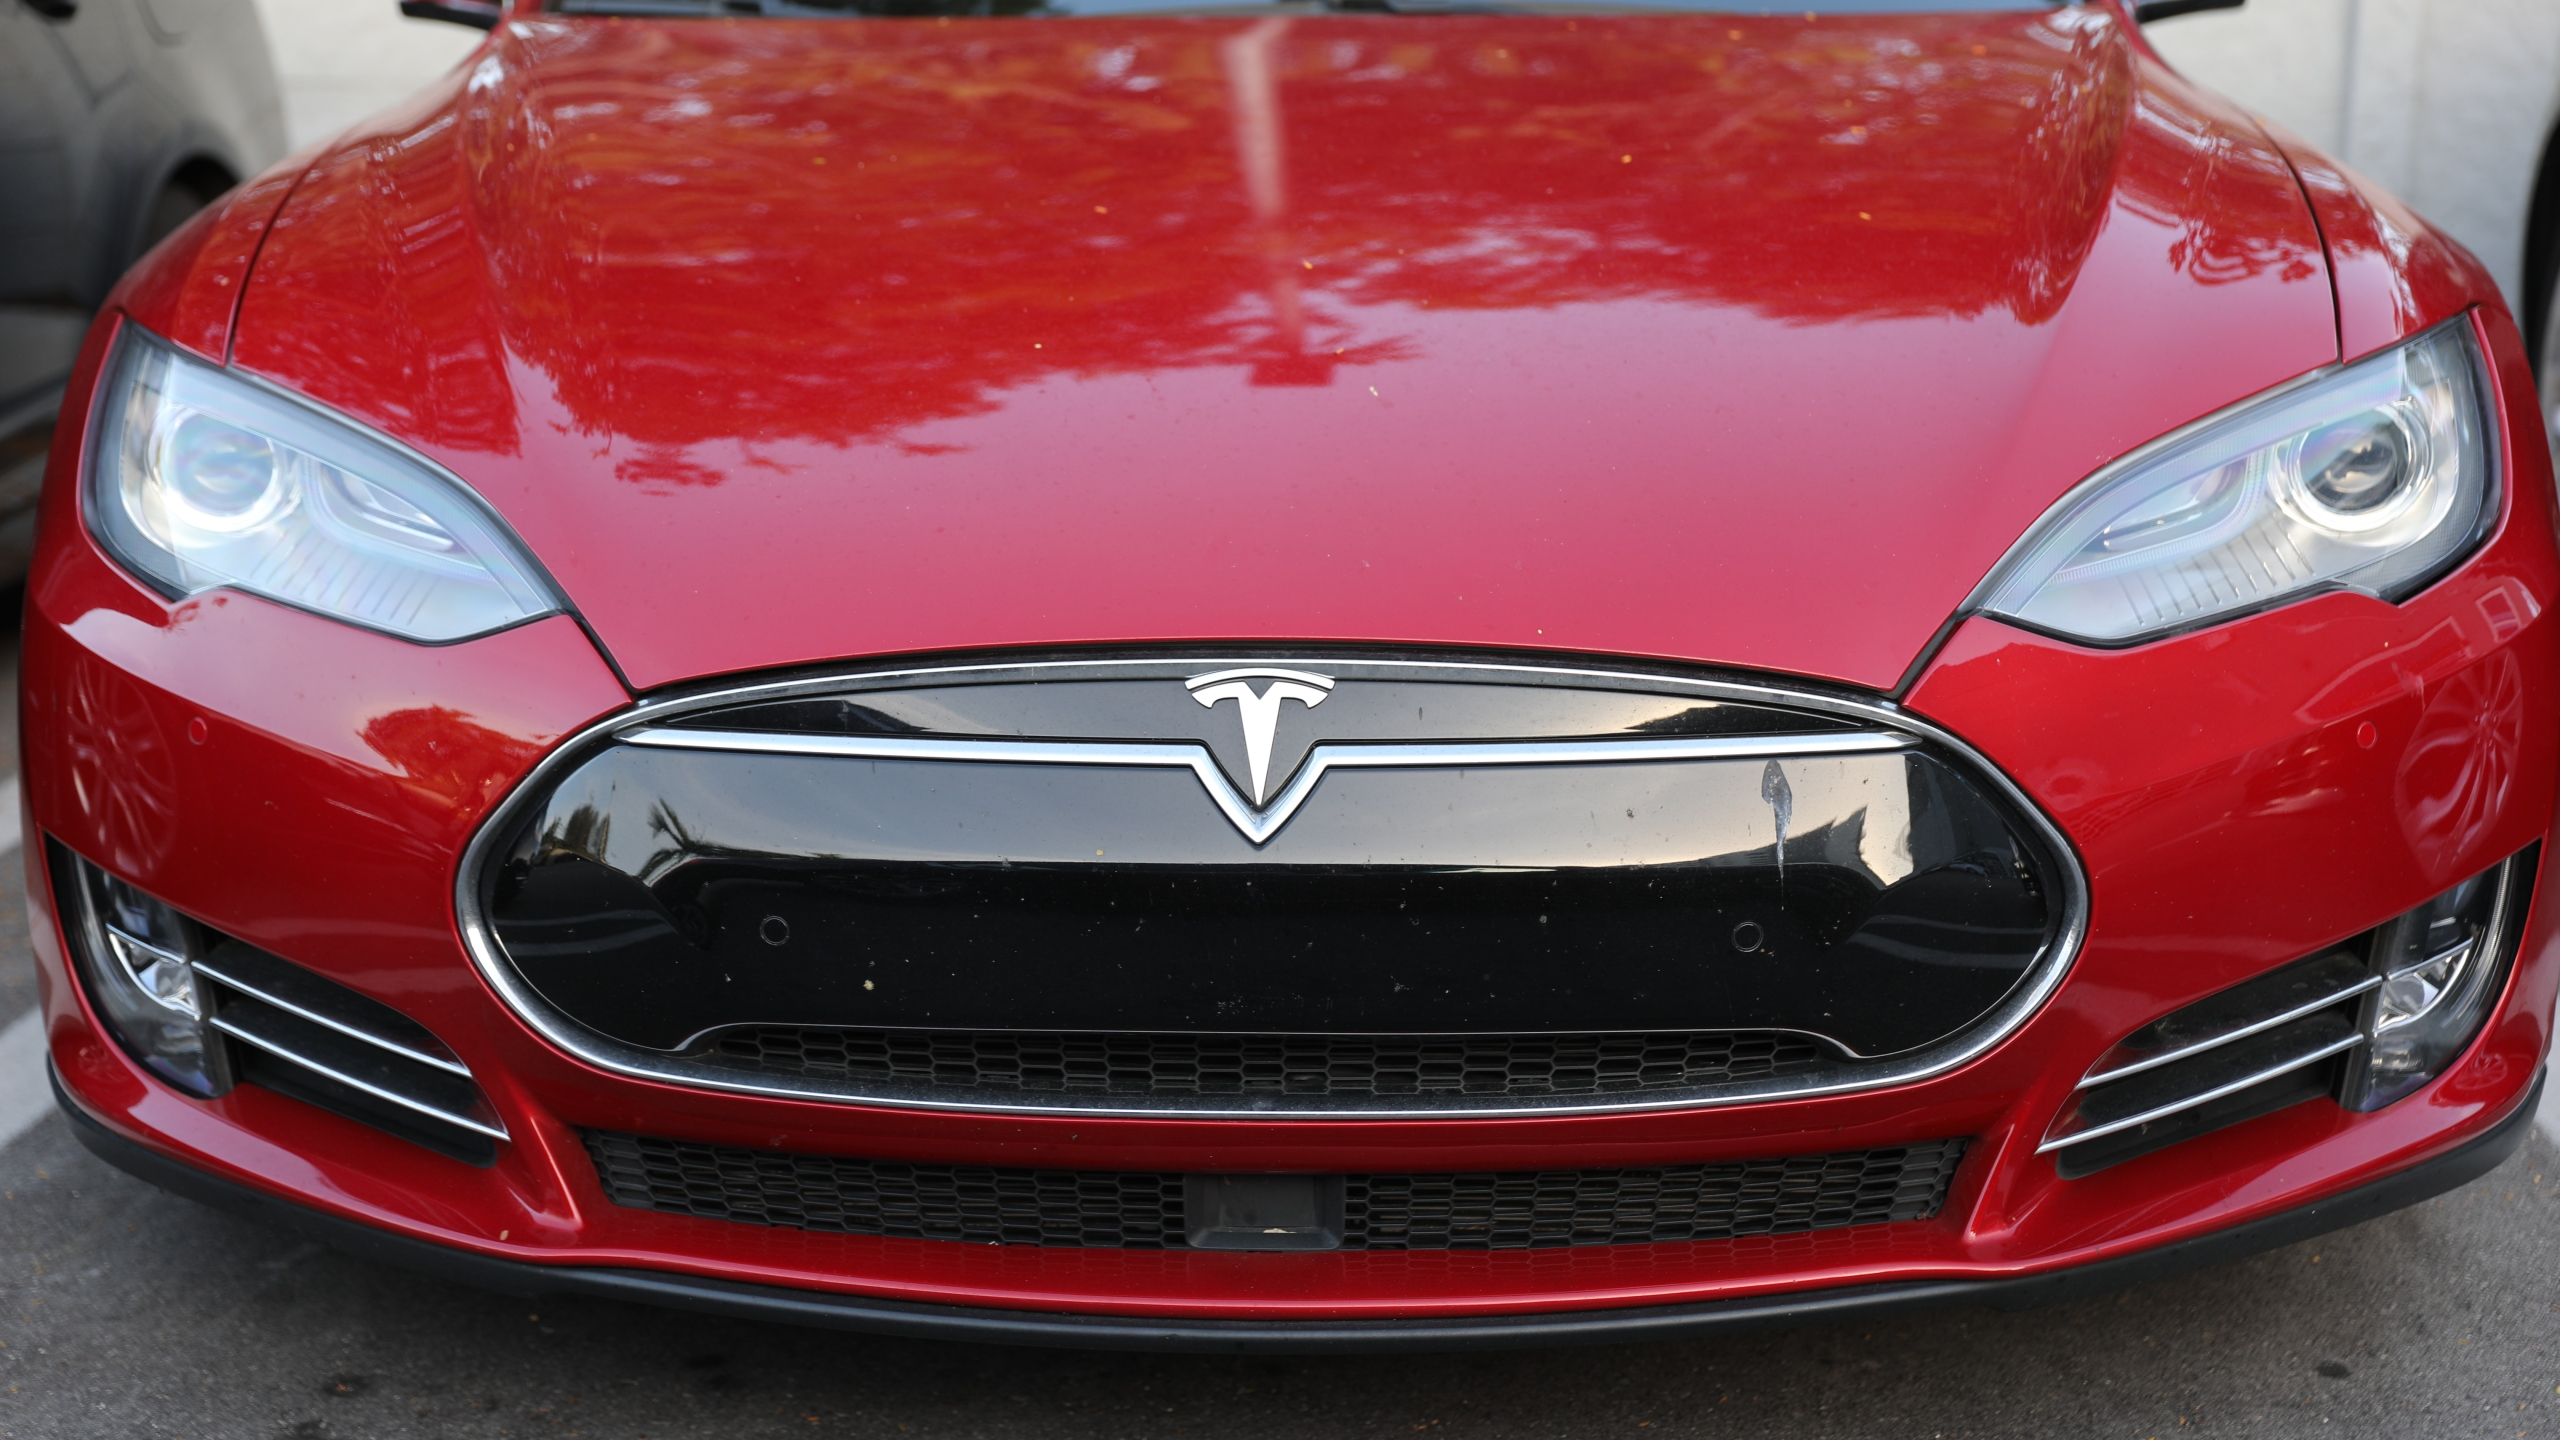 A Tesla vehicle is seen at a dealership on Jan. 3, 2019 in Miami, Florida. (Joe Raedle/Getty Images)